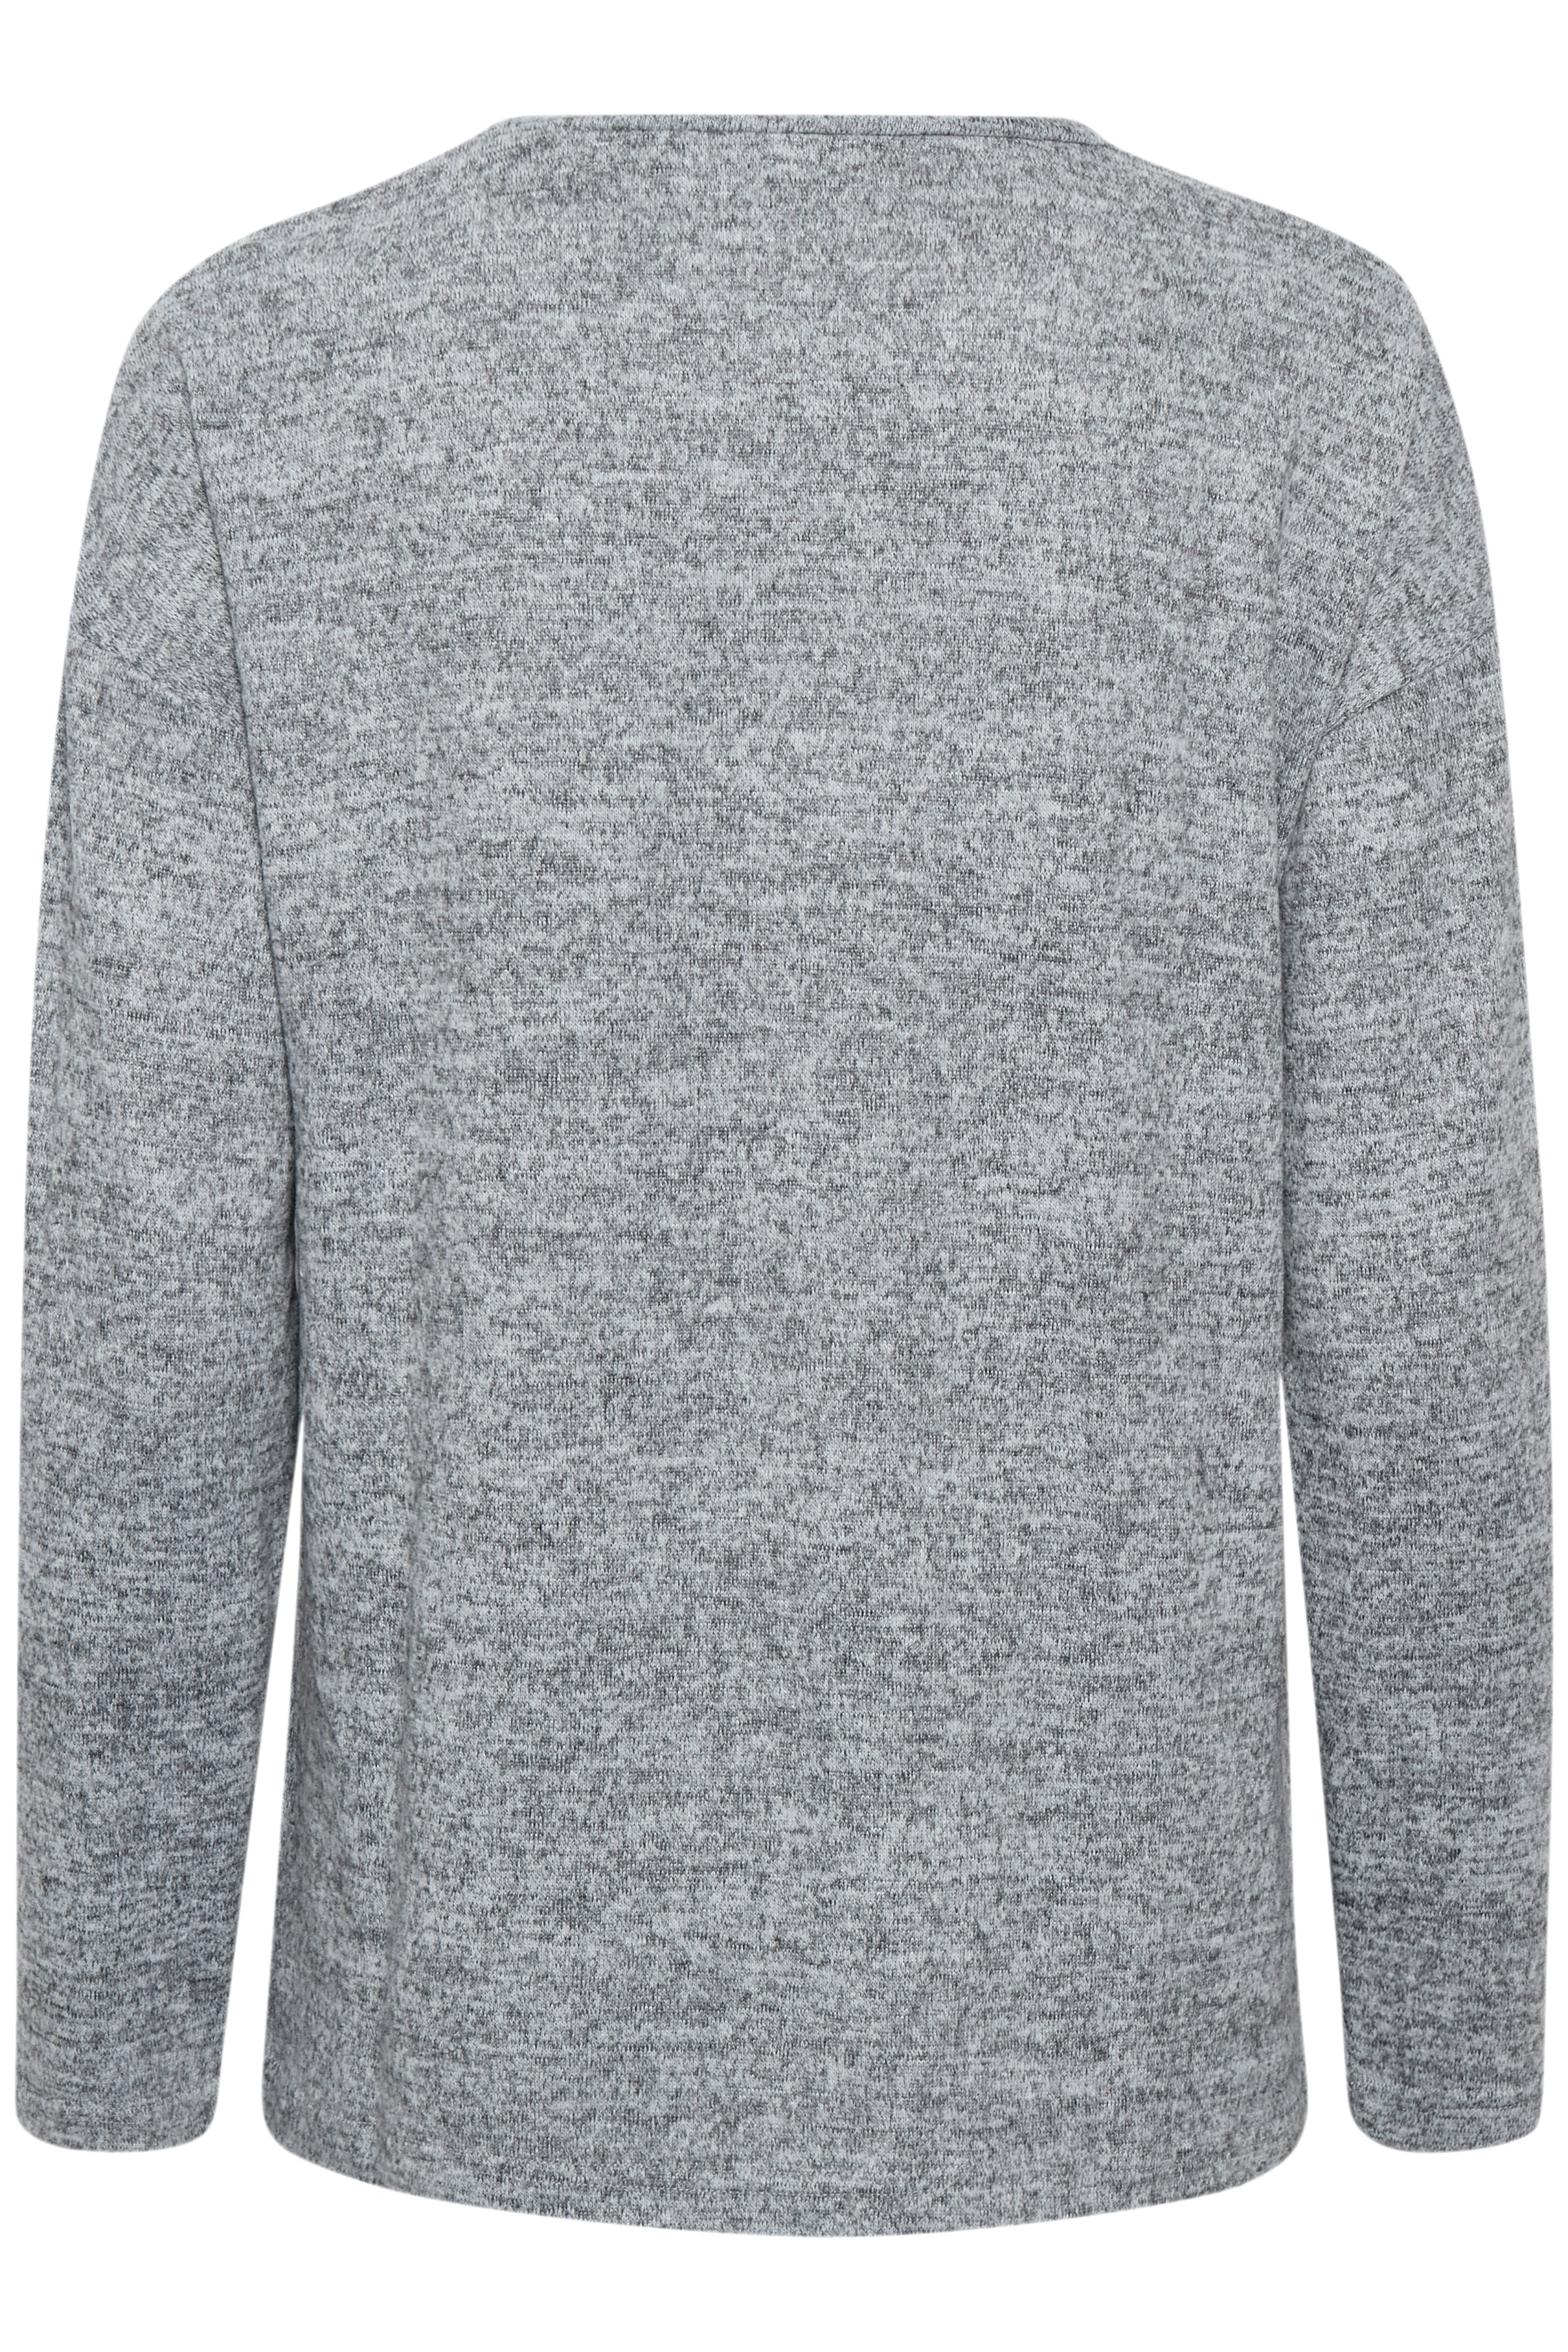 Med. Grey Mel.  from b.young – Buy Med. Grey Mel.  from size XS-XXL here